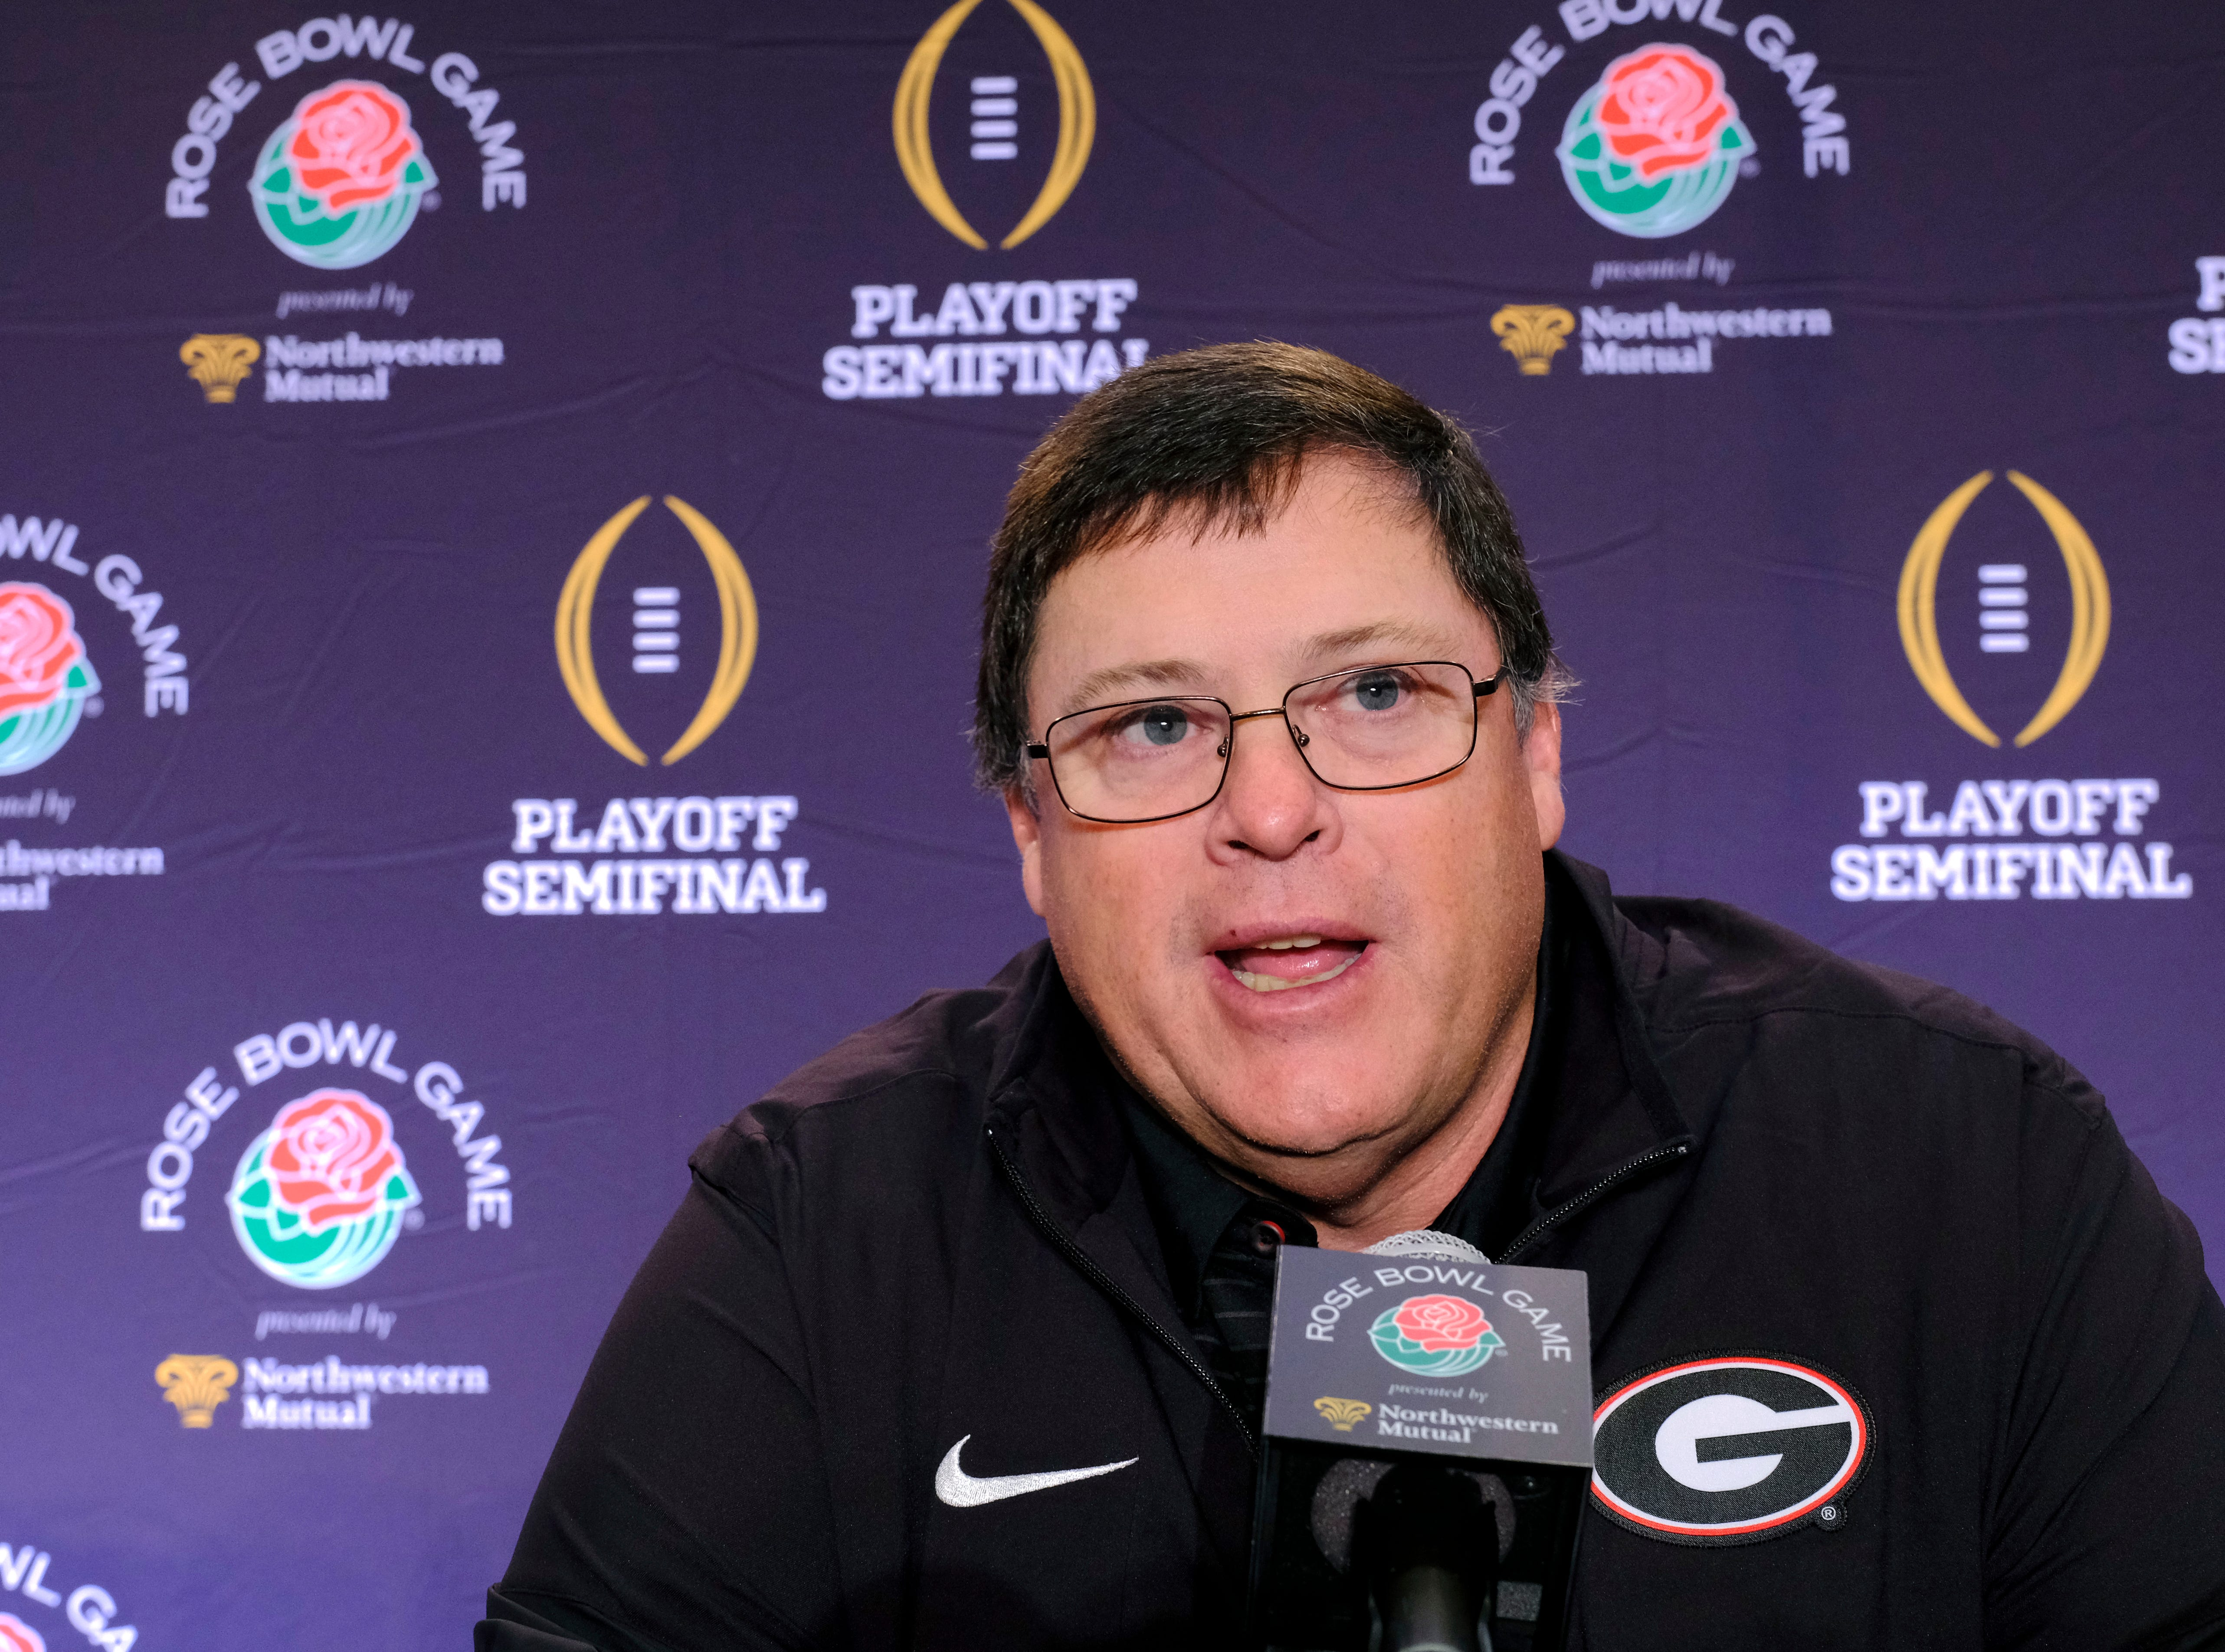 Georgia offensive coordinator Jim Chaney talks to reporters during a news conference in Los Angeles on Thursday, Dec. 28, 2017. Oklahoma will take on Georgia on Monday, Jan. 1, 2018.